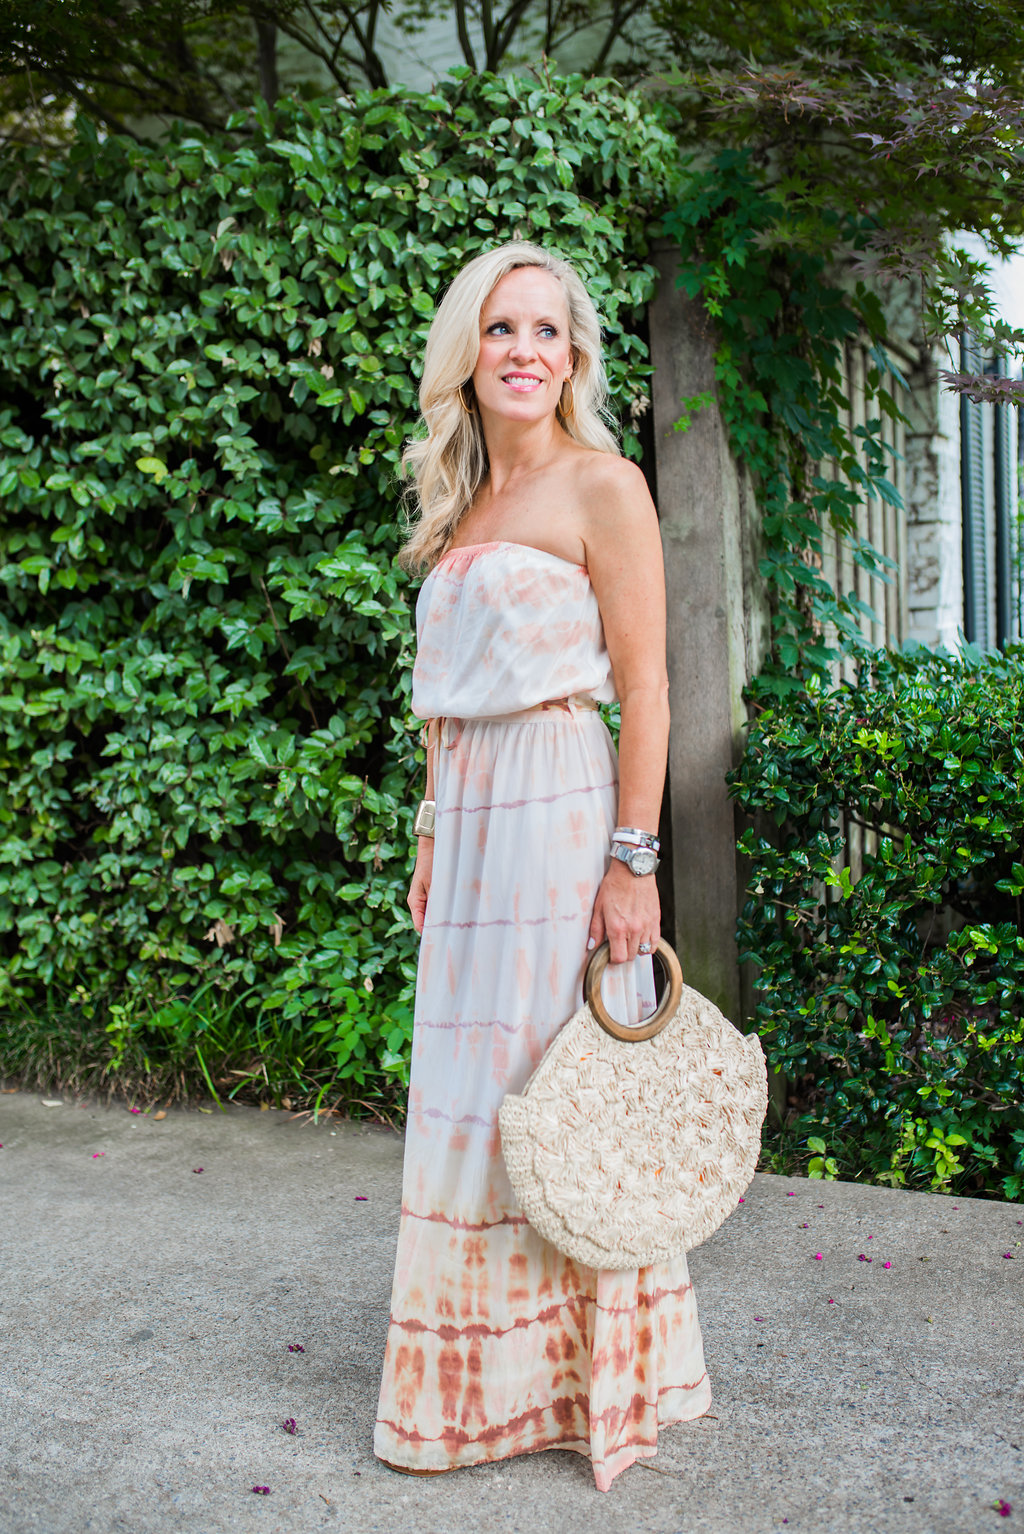 Alicia Wood, Dallas Lifestyle Blogger, Dallas Fashion Blogger, Clotheshorse Anonymous, Gypsy05 Dress, Dallas Consignment, Kayu Circle Bag, Kayu Coco Bag